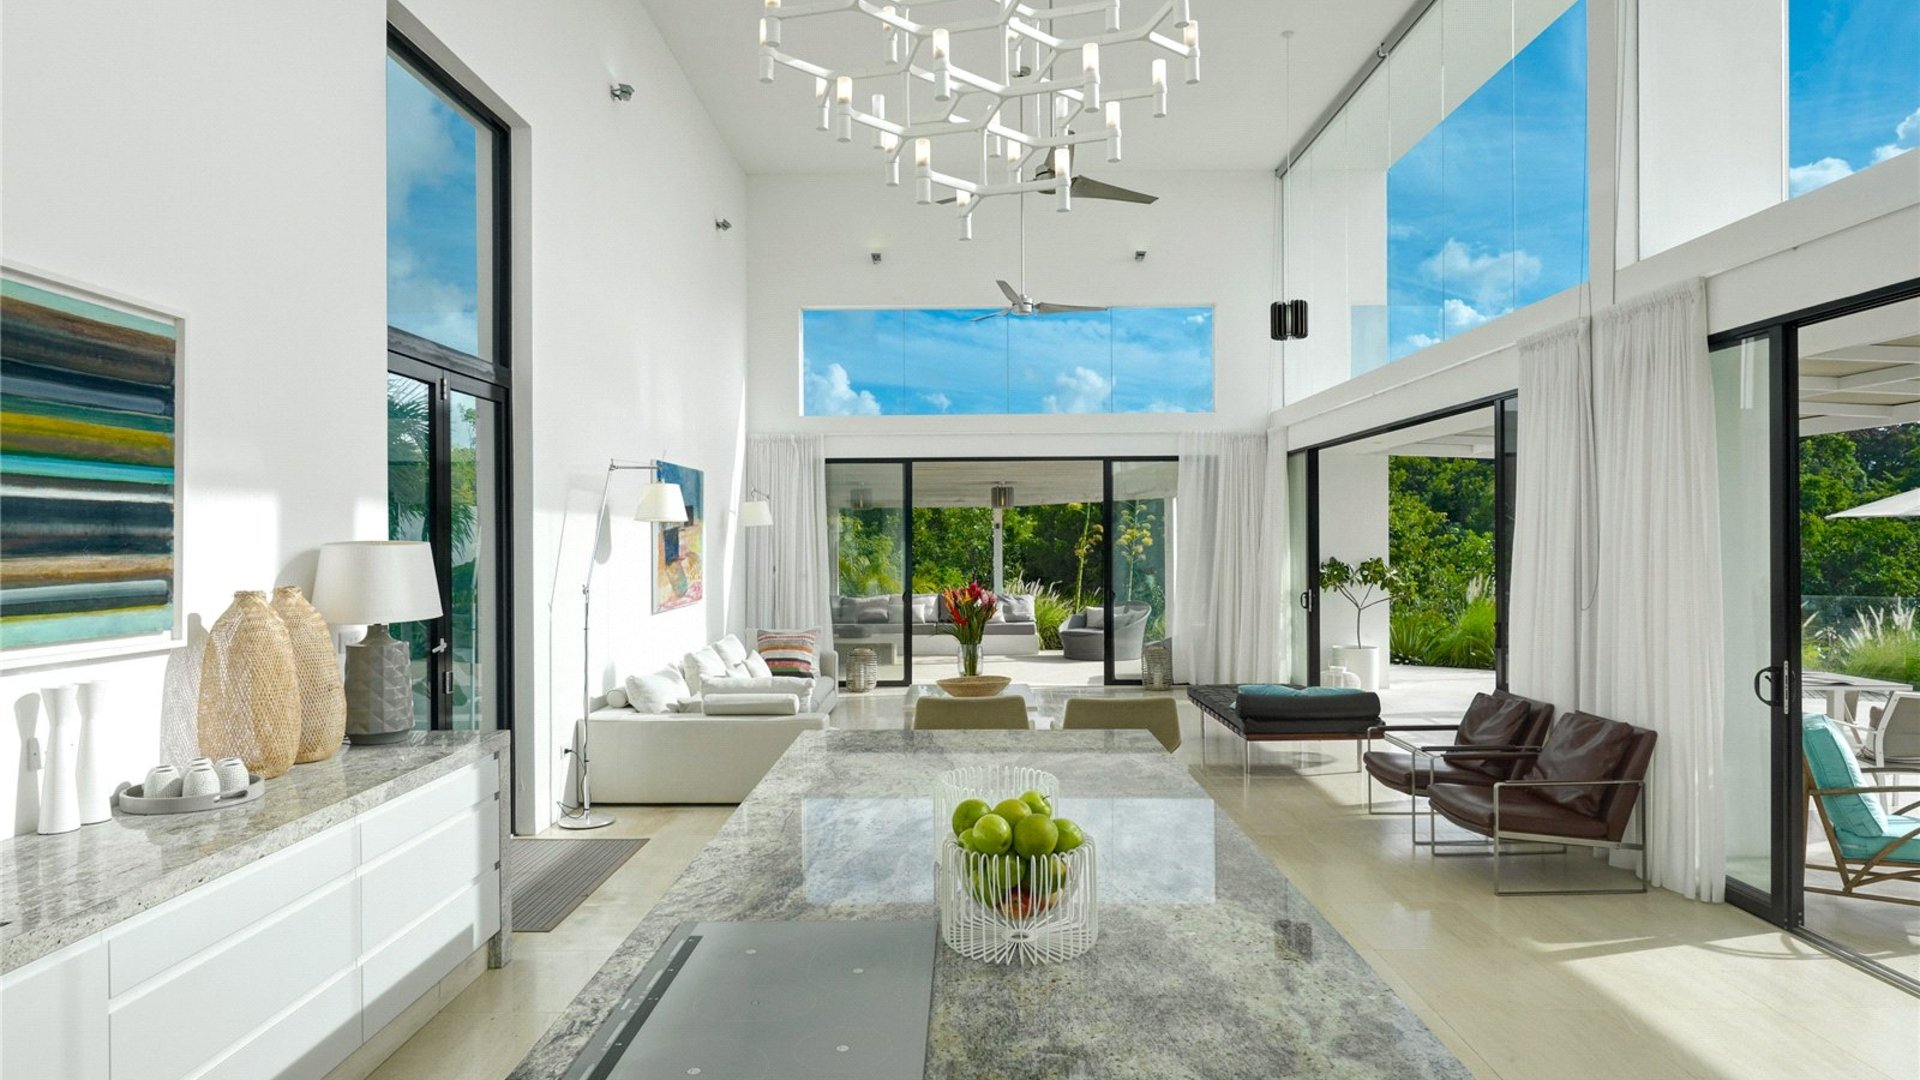 Atelier House, St. James, Barbados